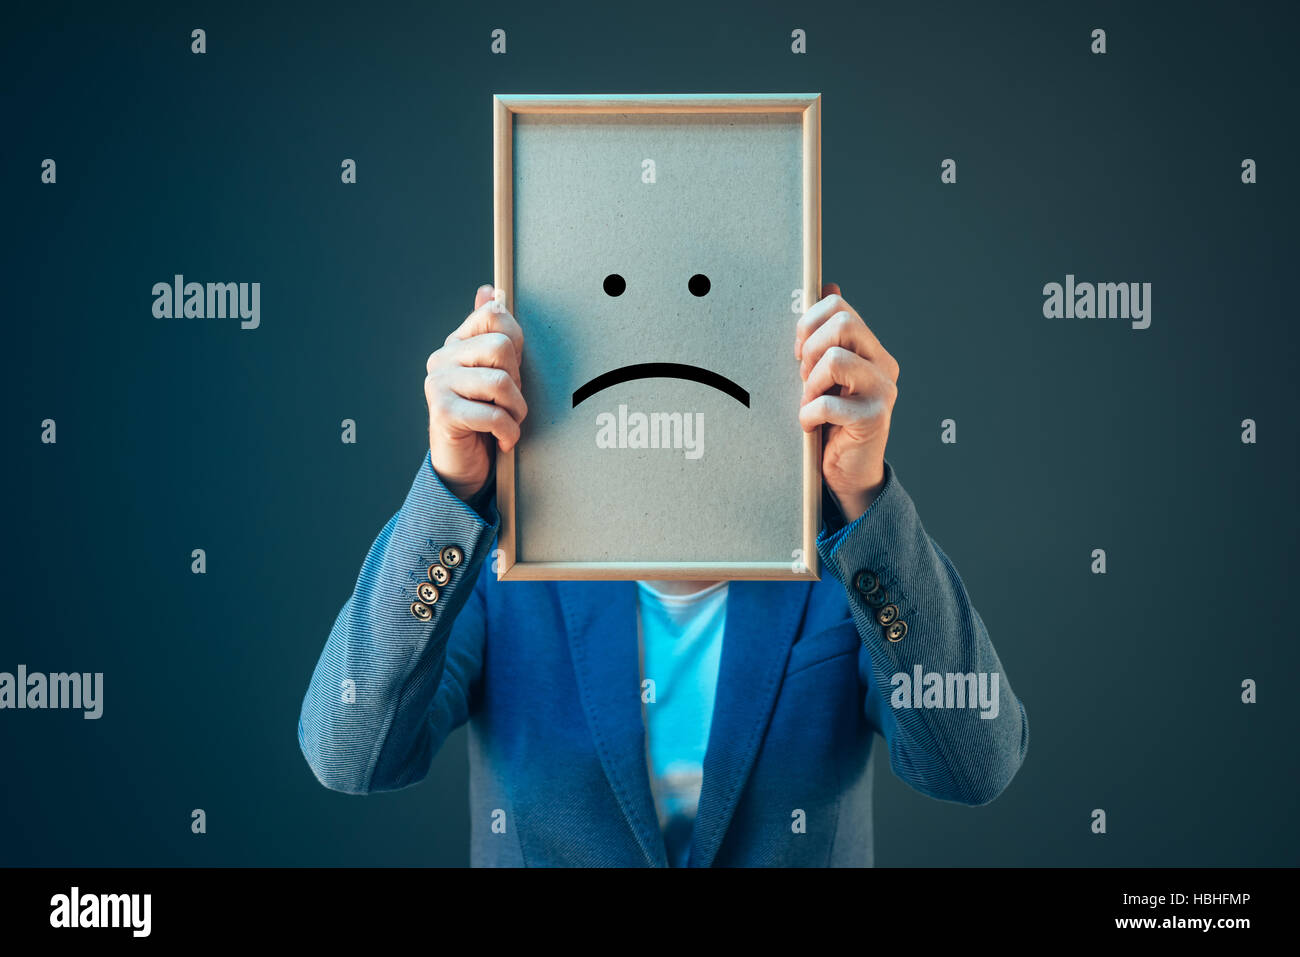 Pessimist High Resolution Stock Photography and Images - Alamy